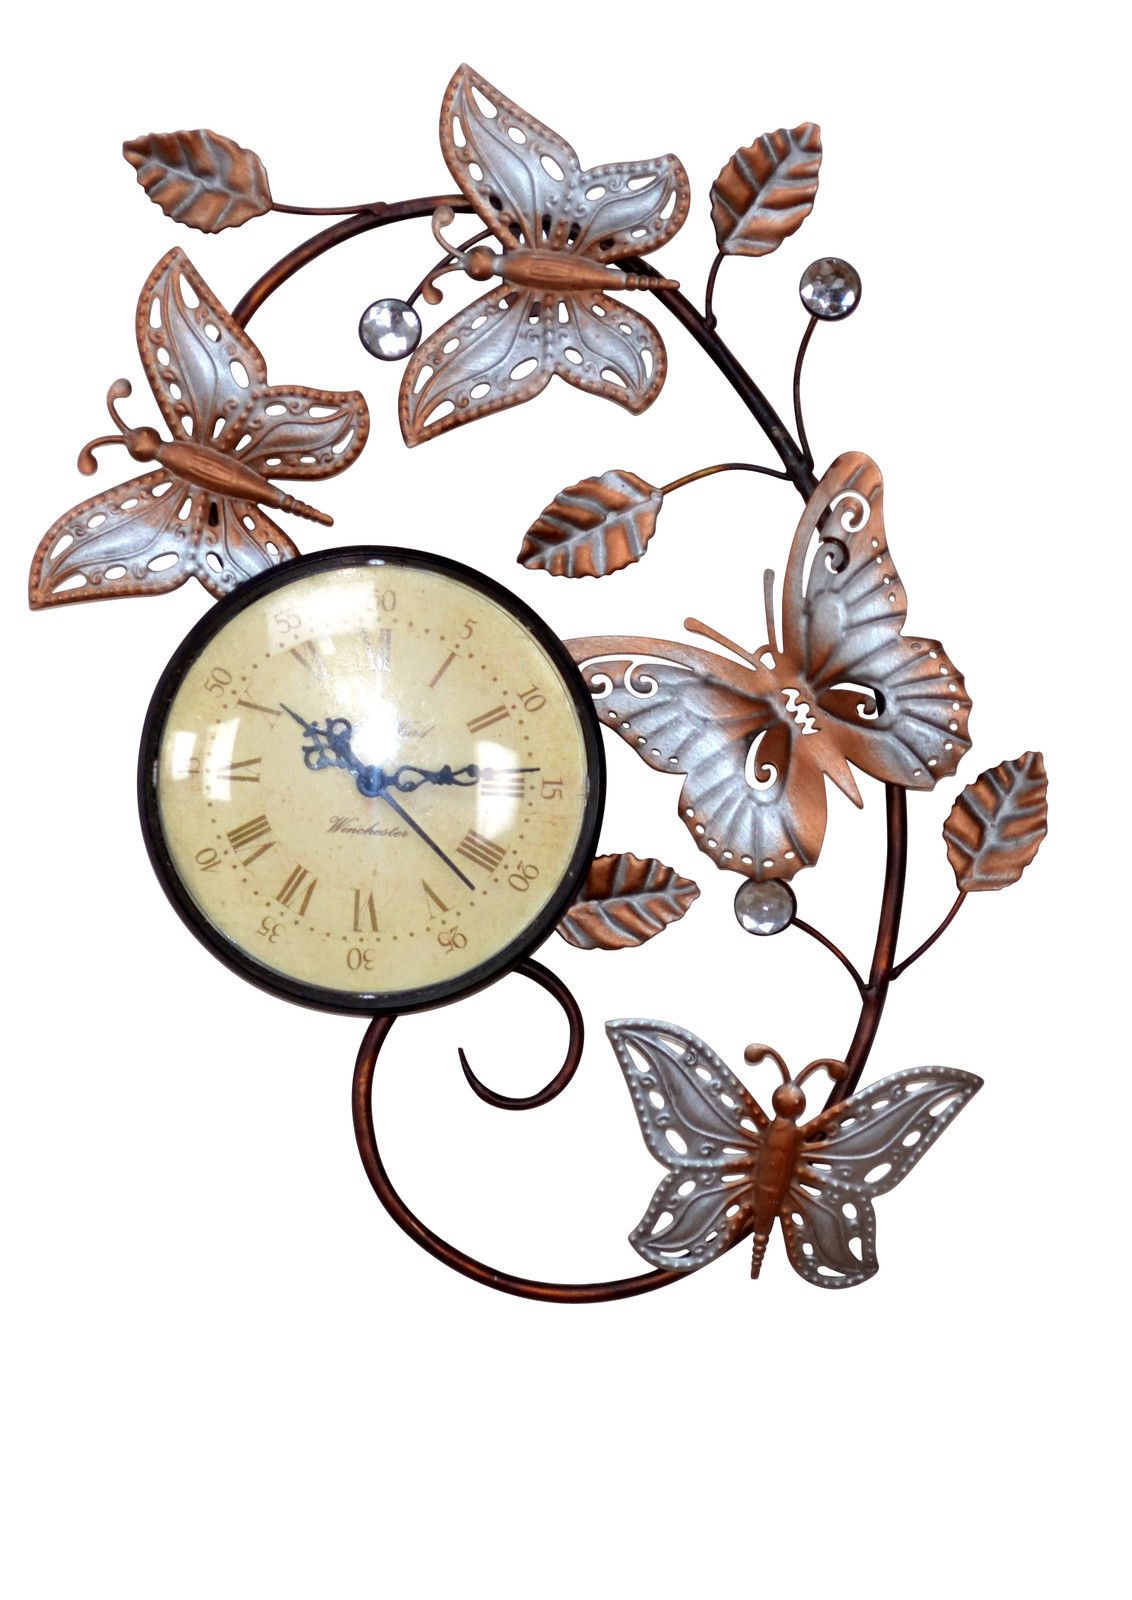 wanduhr uhr romantisch blumen silber beige r mische zahlen metall bronce neu kaufen bei go perfect. Black Bedroom Furniture Sets. Home Design Ideas